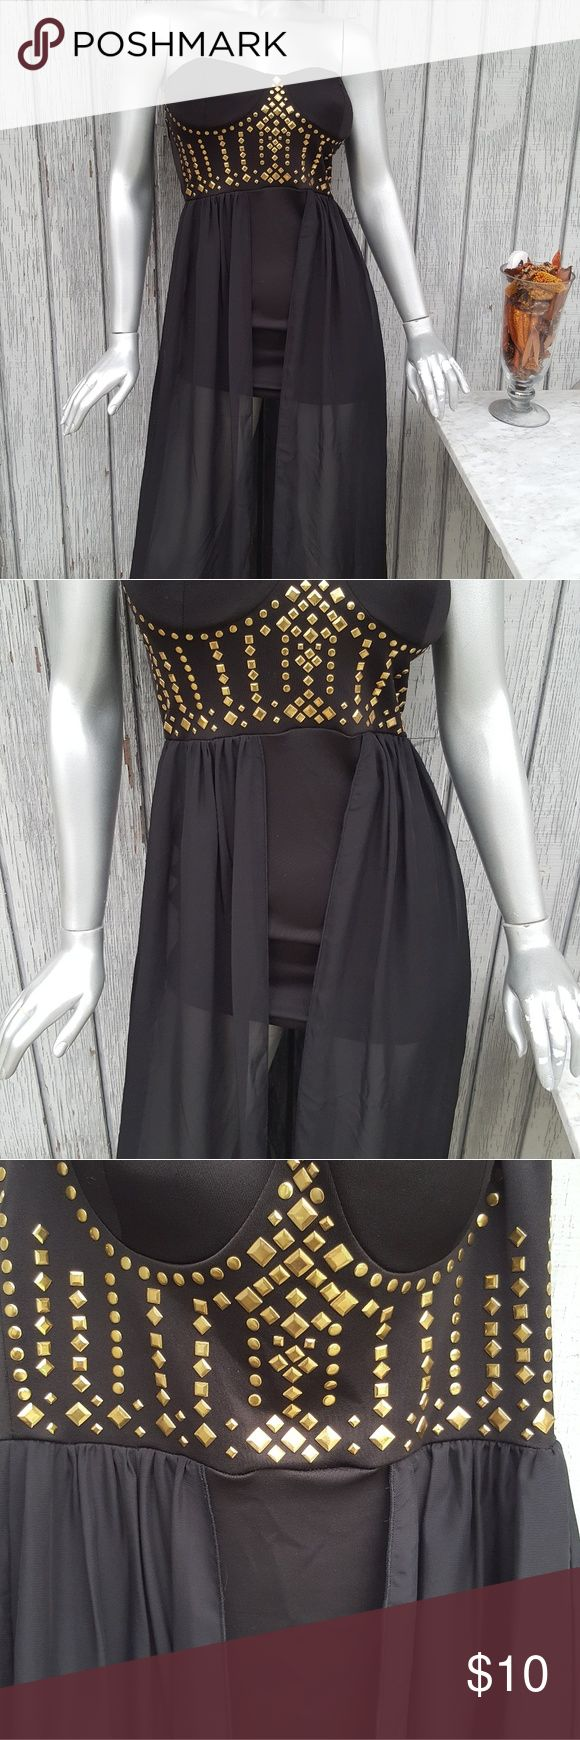 Forever 21 strapless studded dress 93% Polyester  7% Spandex  Short skirt w black veil  Accepts reasonable offers* Smoke free home* Save the planet buy pre owned ♡  Mannequins measurements  Height 5'8' 34 DD Bust 63 Waist 35 Hips Shoulder to waist 39 inches Hip to leg 42 inches  Thank you for looking at my store.♡ Forever 21 Dresses Maxi